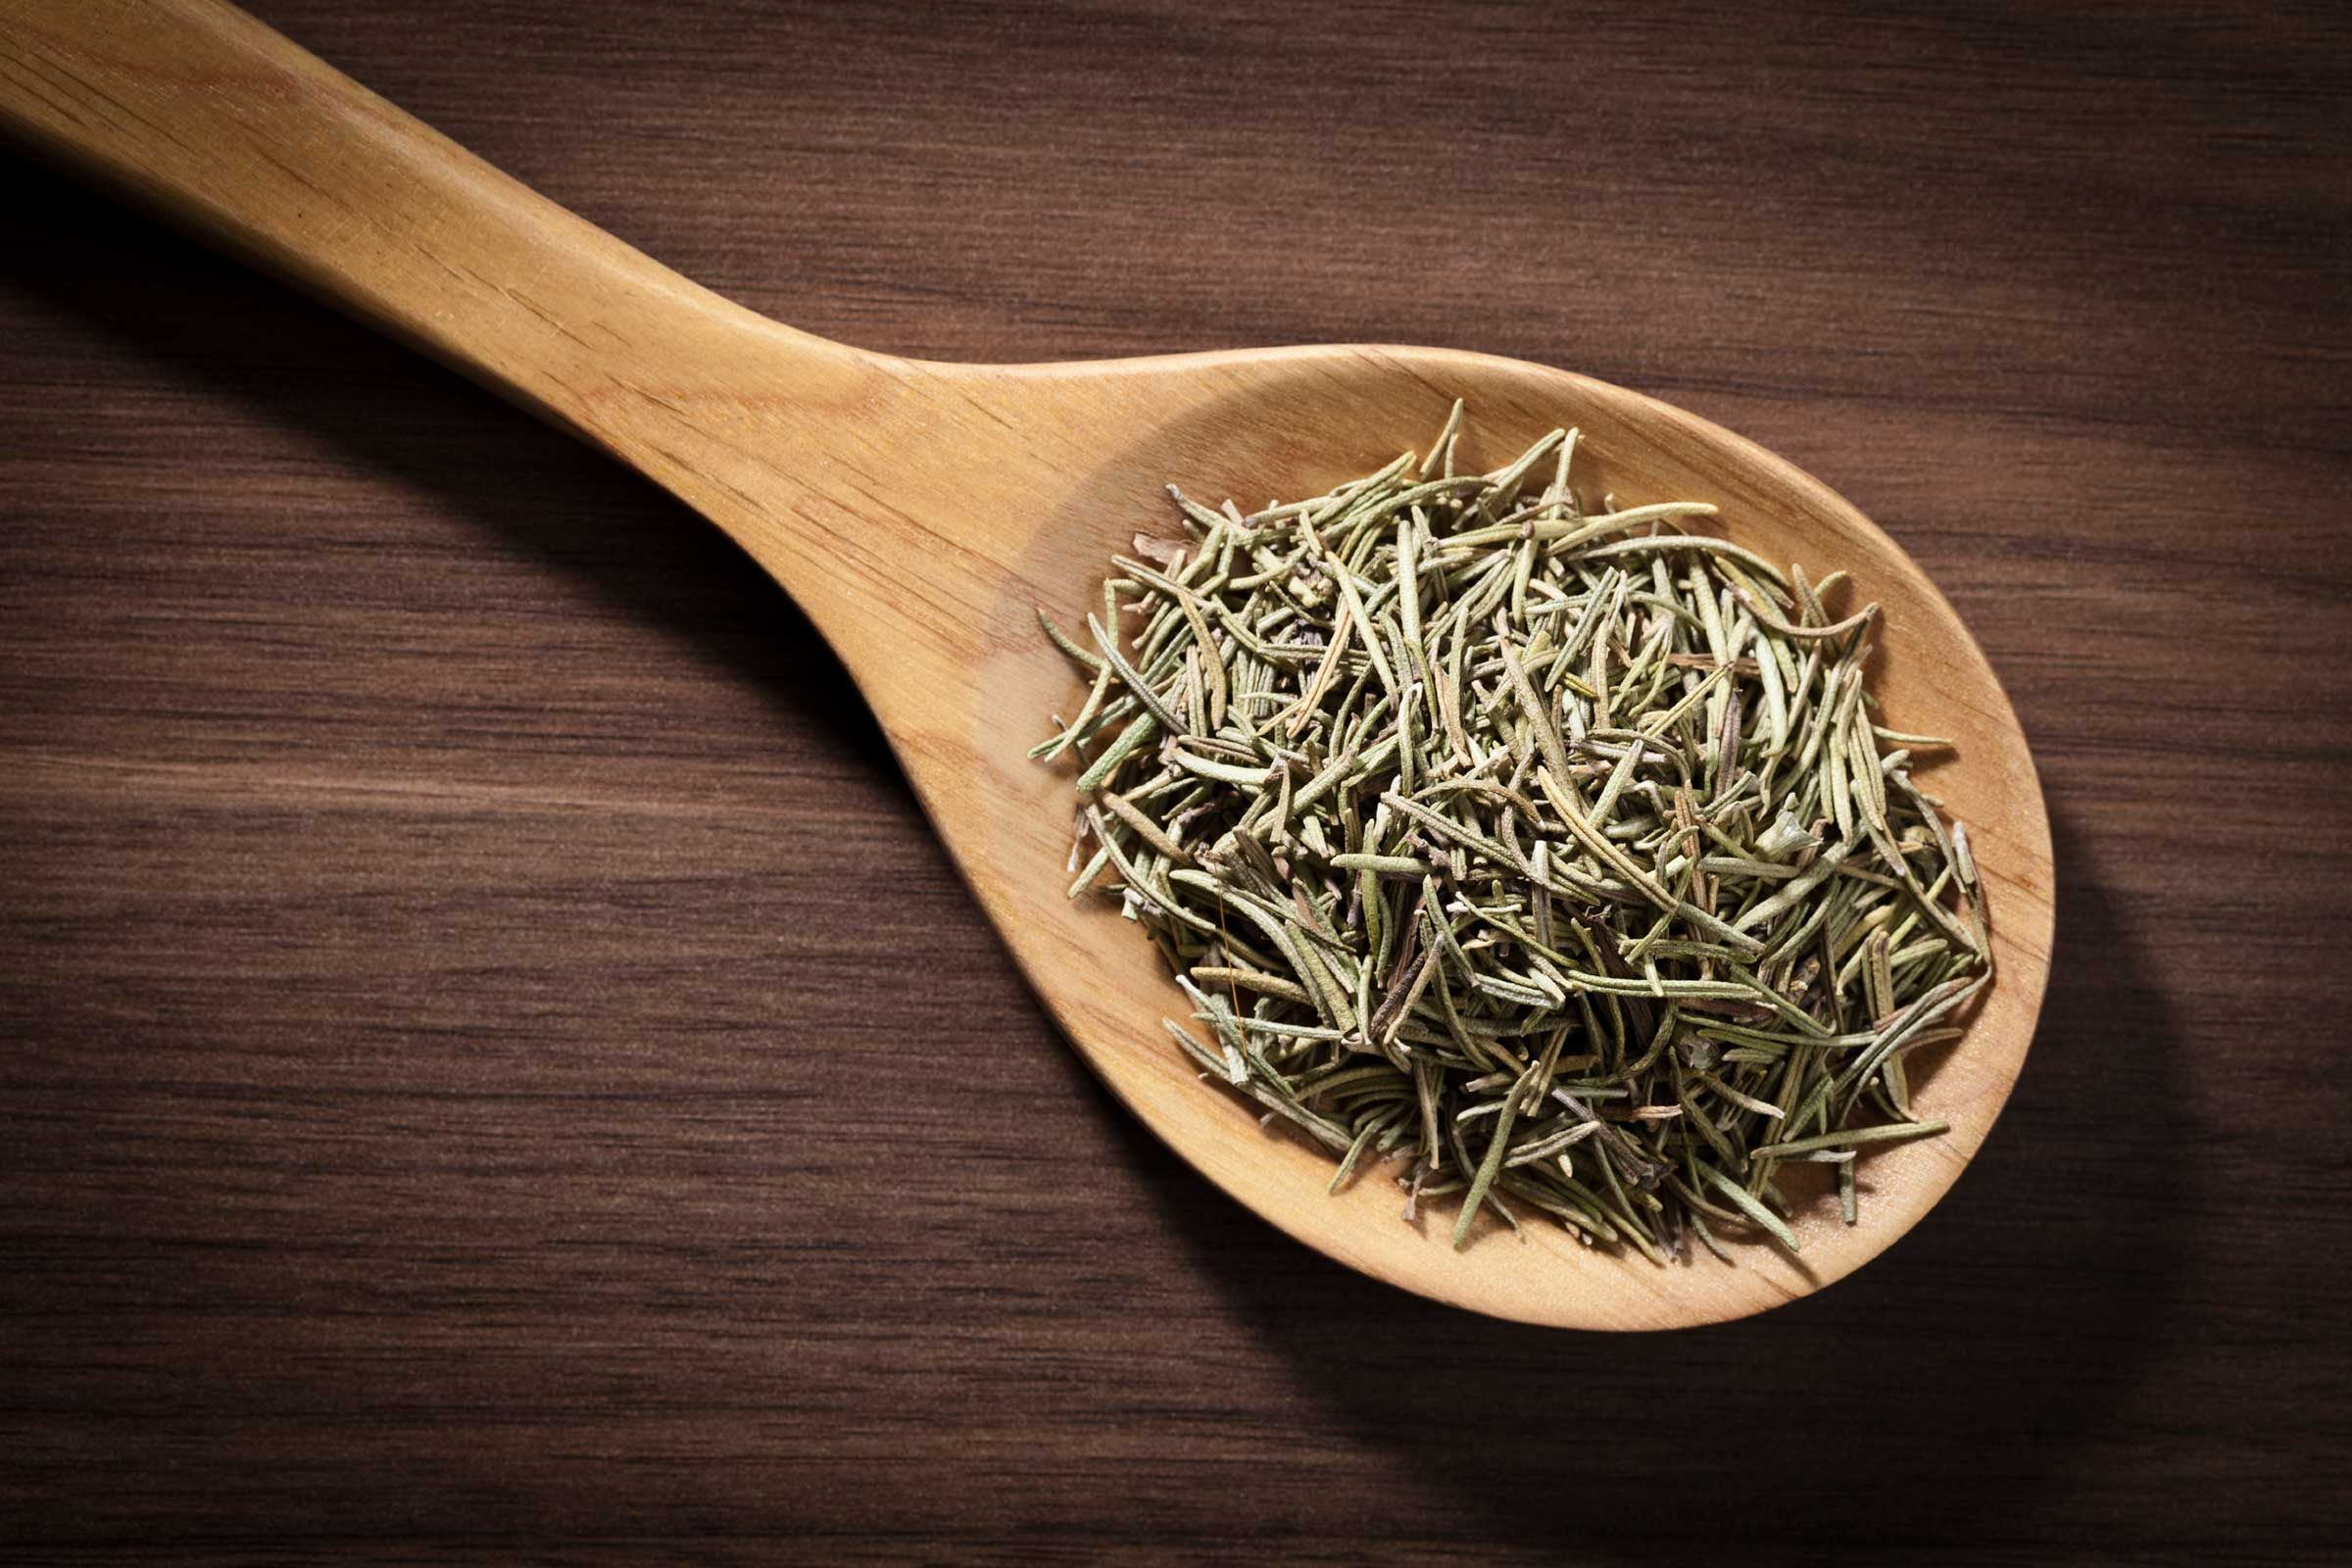 If you have dried rosemary in your kitchen, crush a small handful